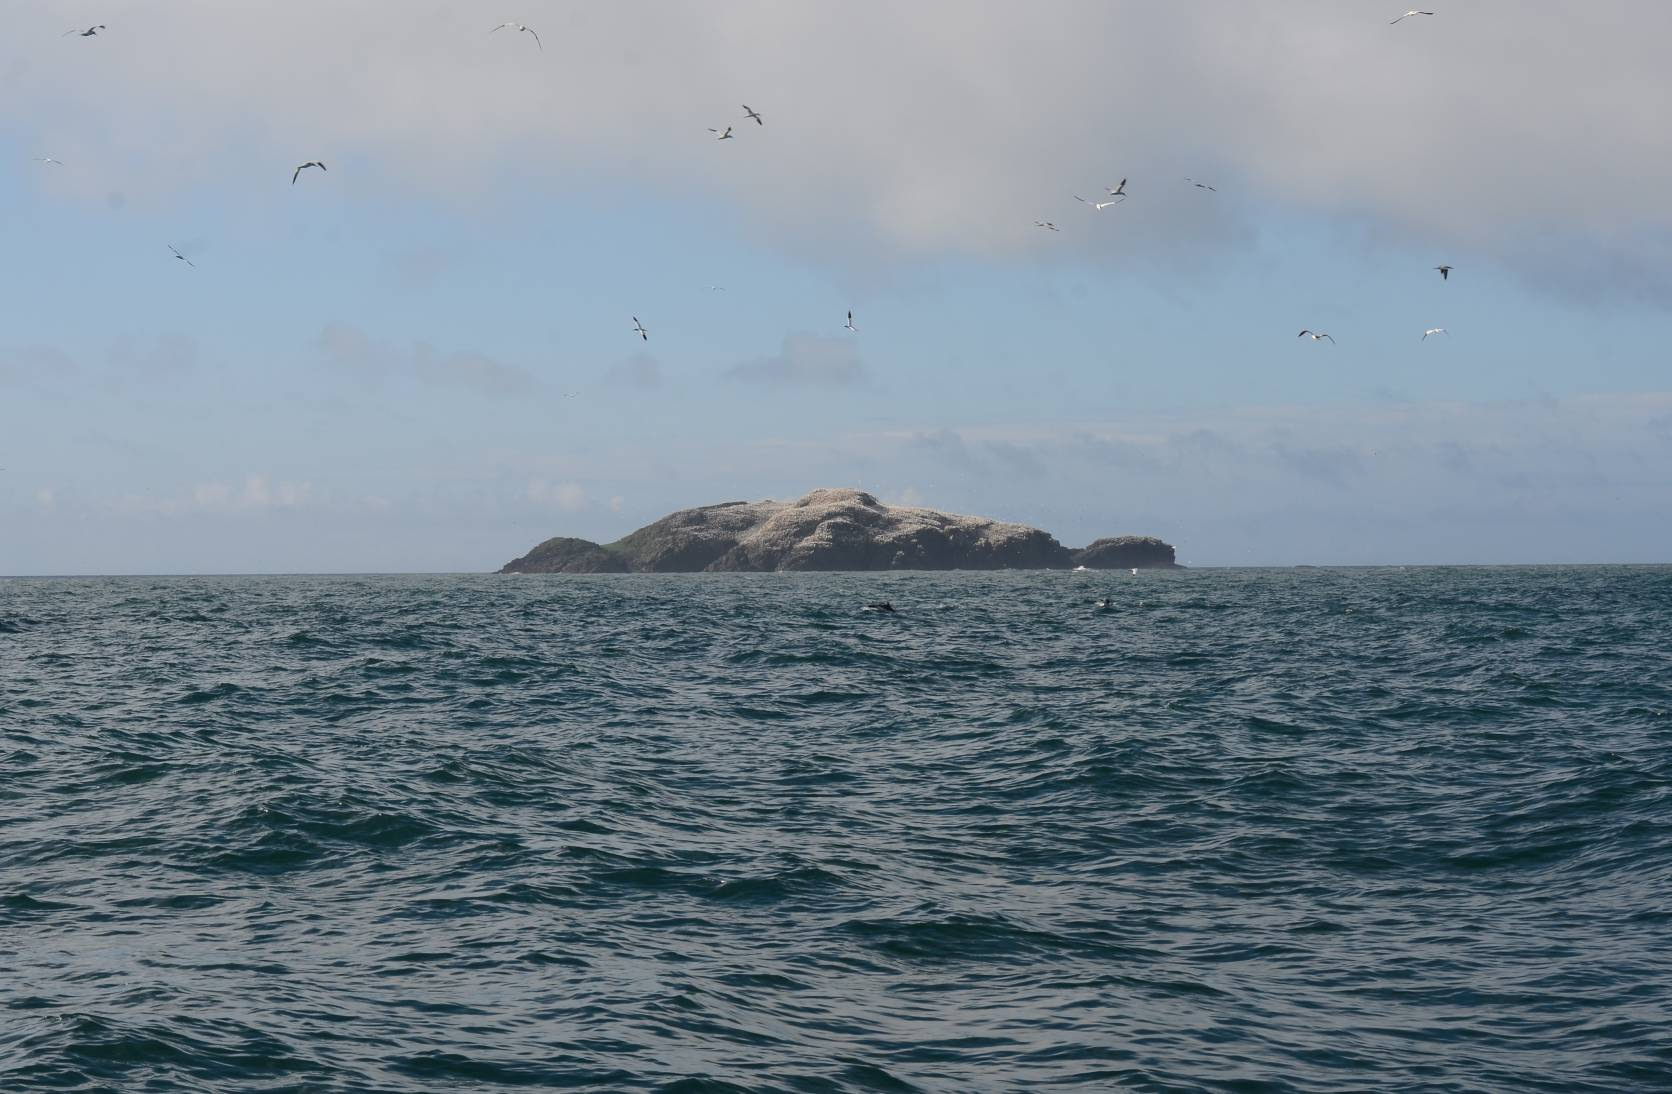 Rocky island viewed from the sea